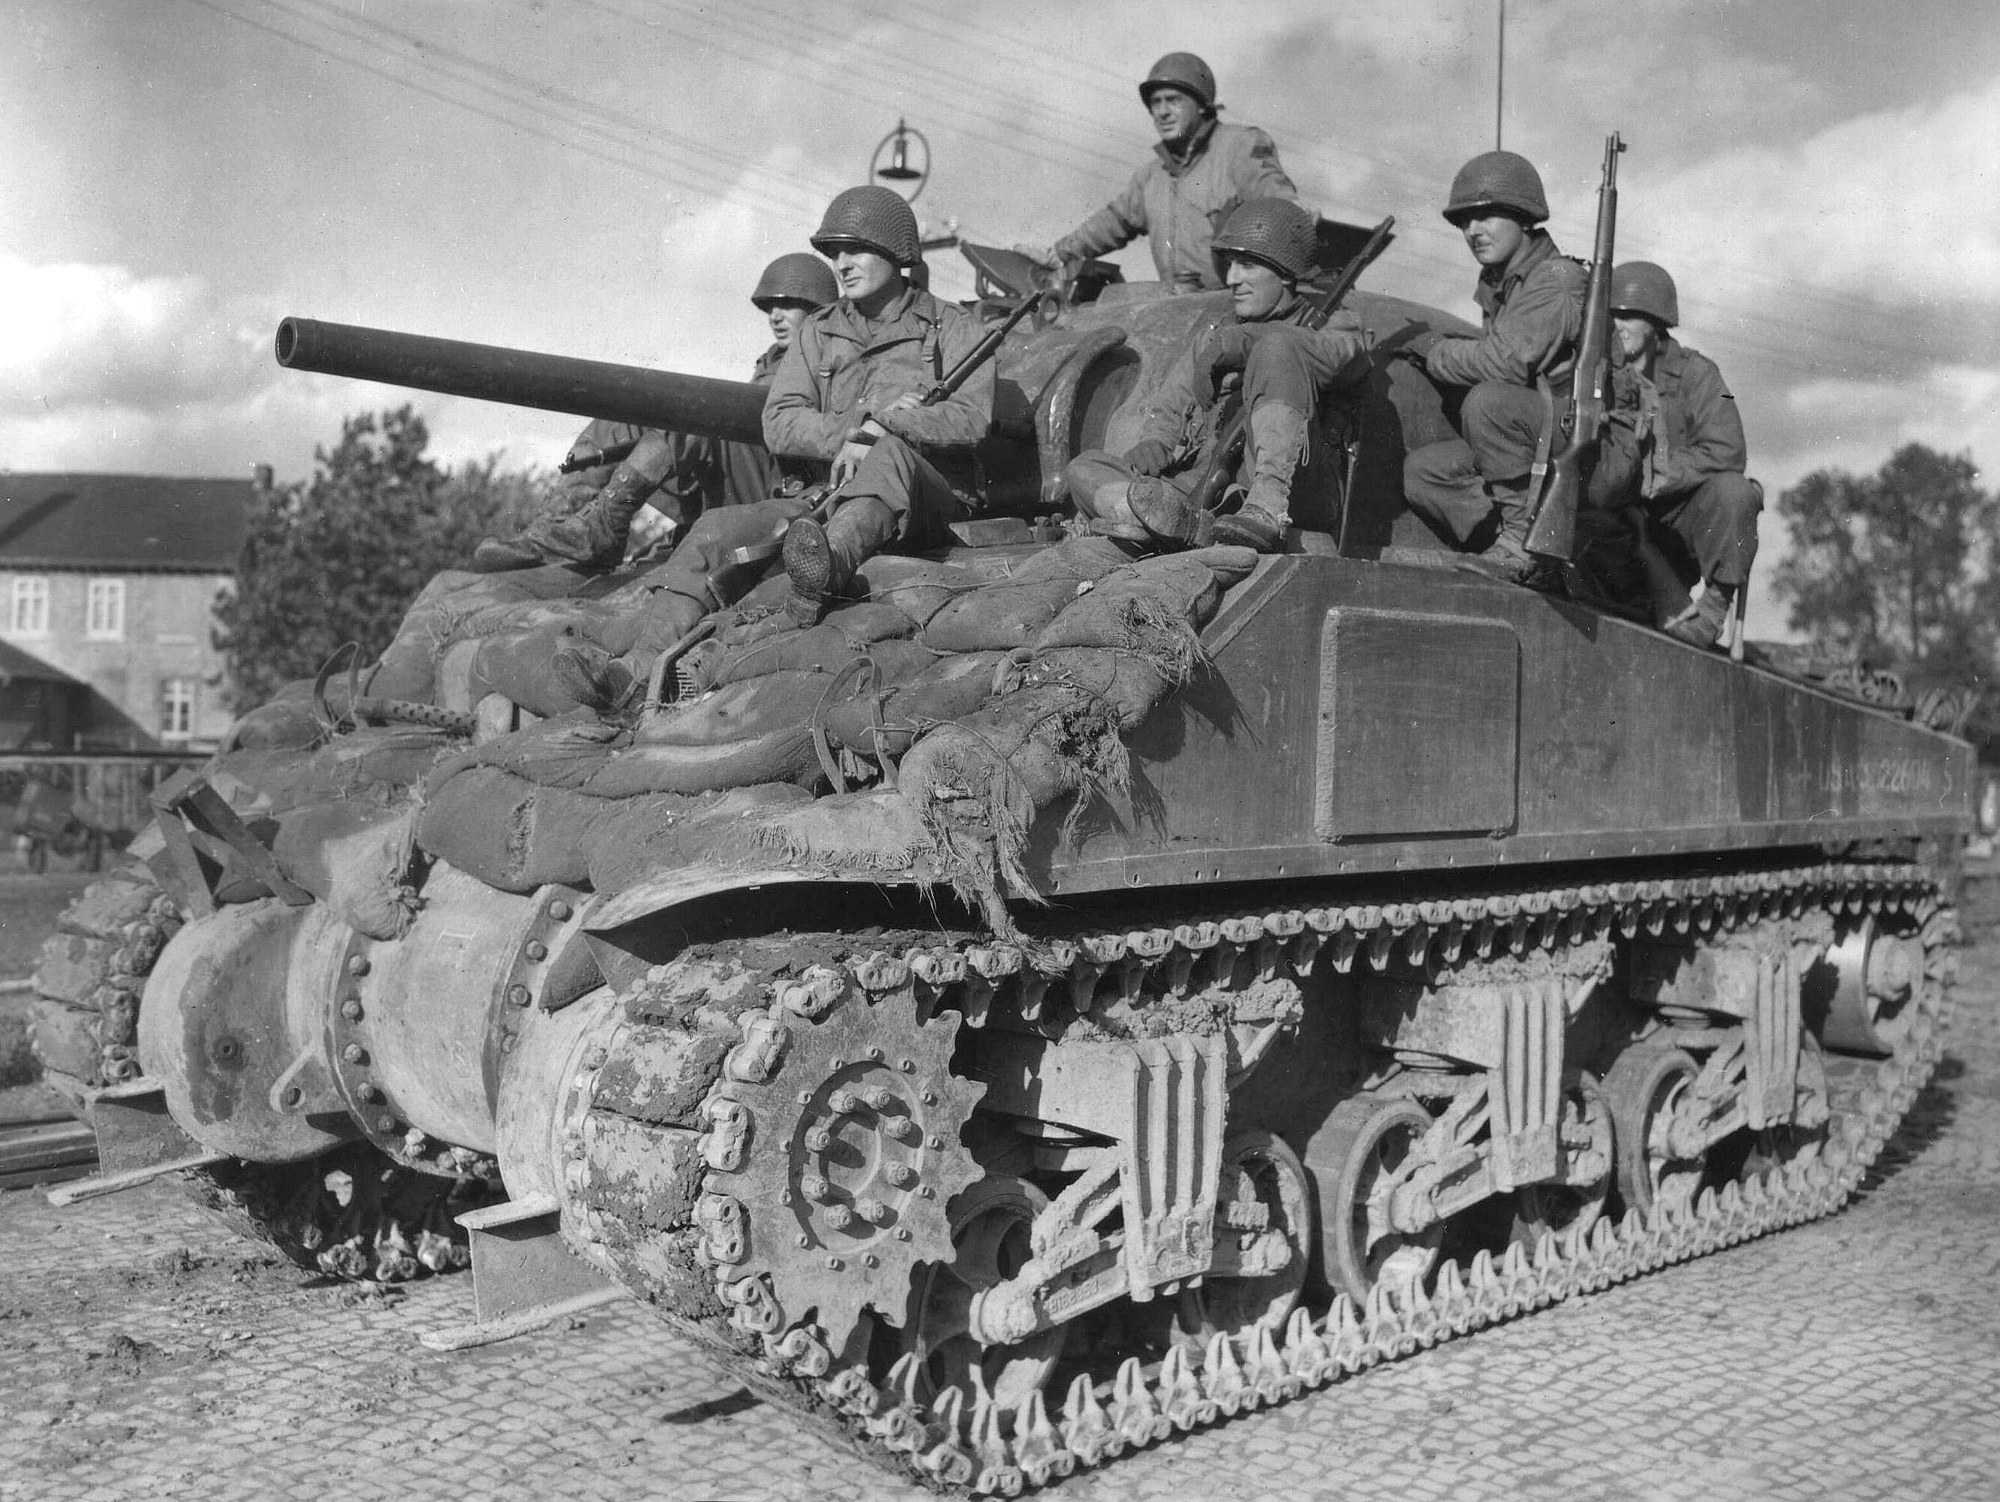 3rd Armored Division, Stolberg, 1944